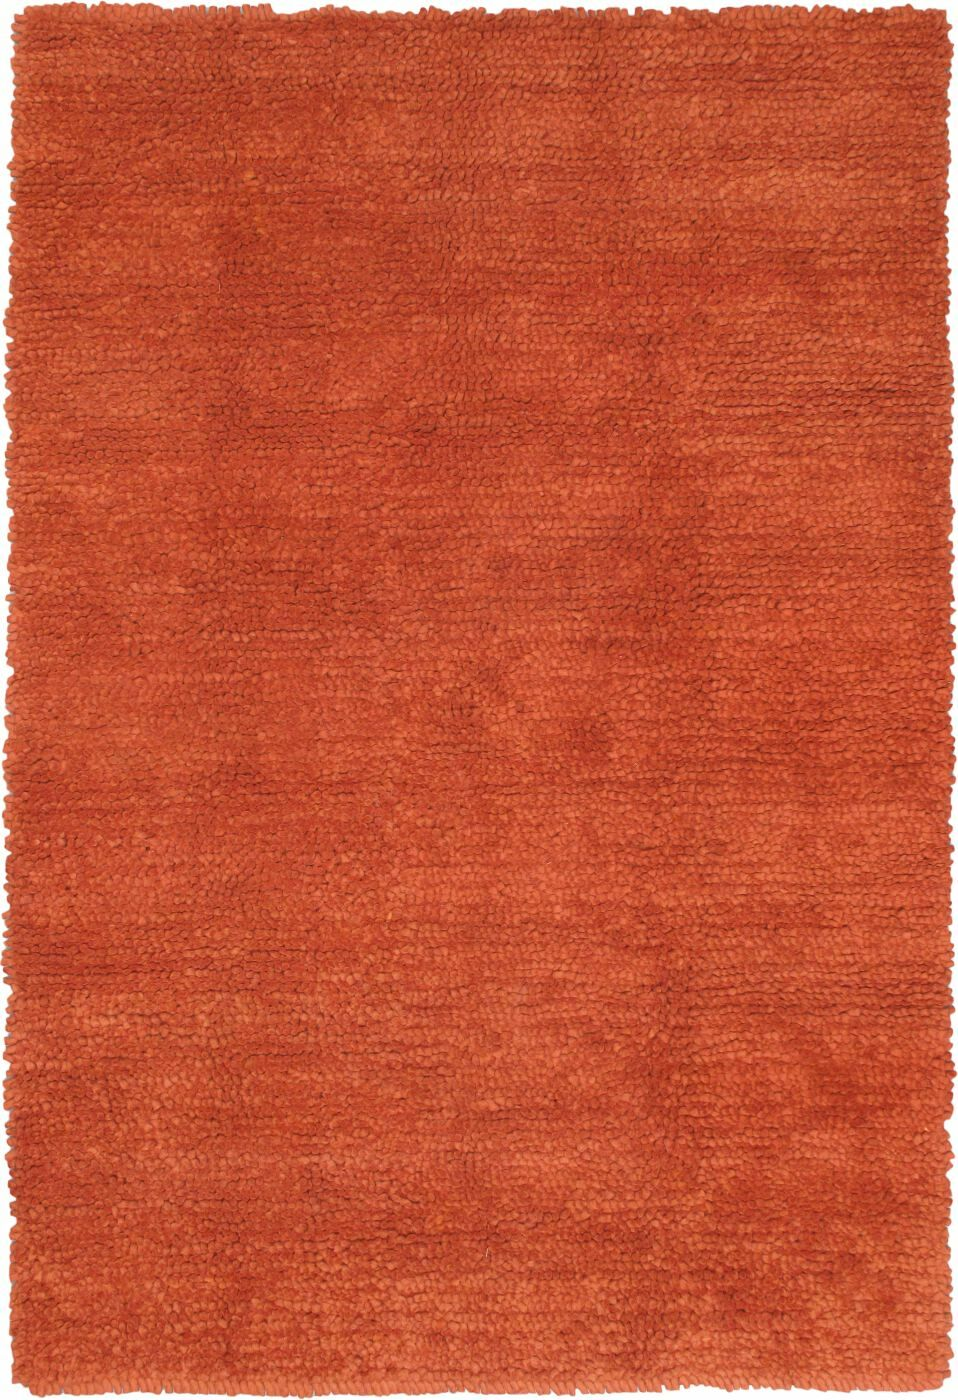 Ritz Copper Area Rug Rug Size: 5'7